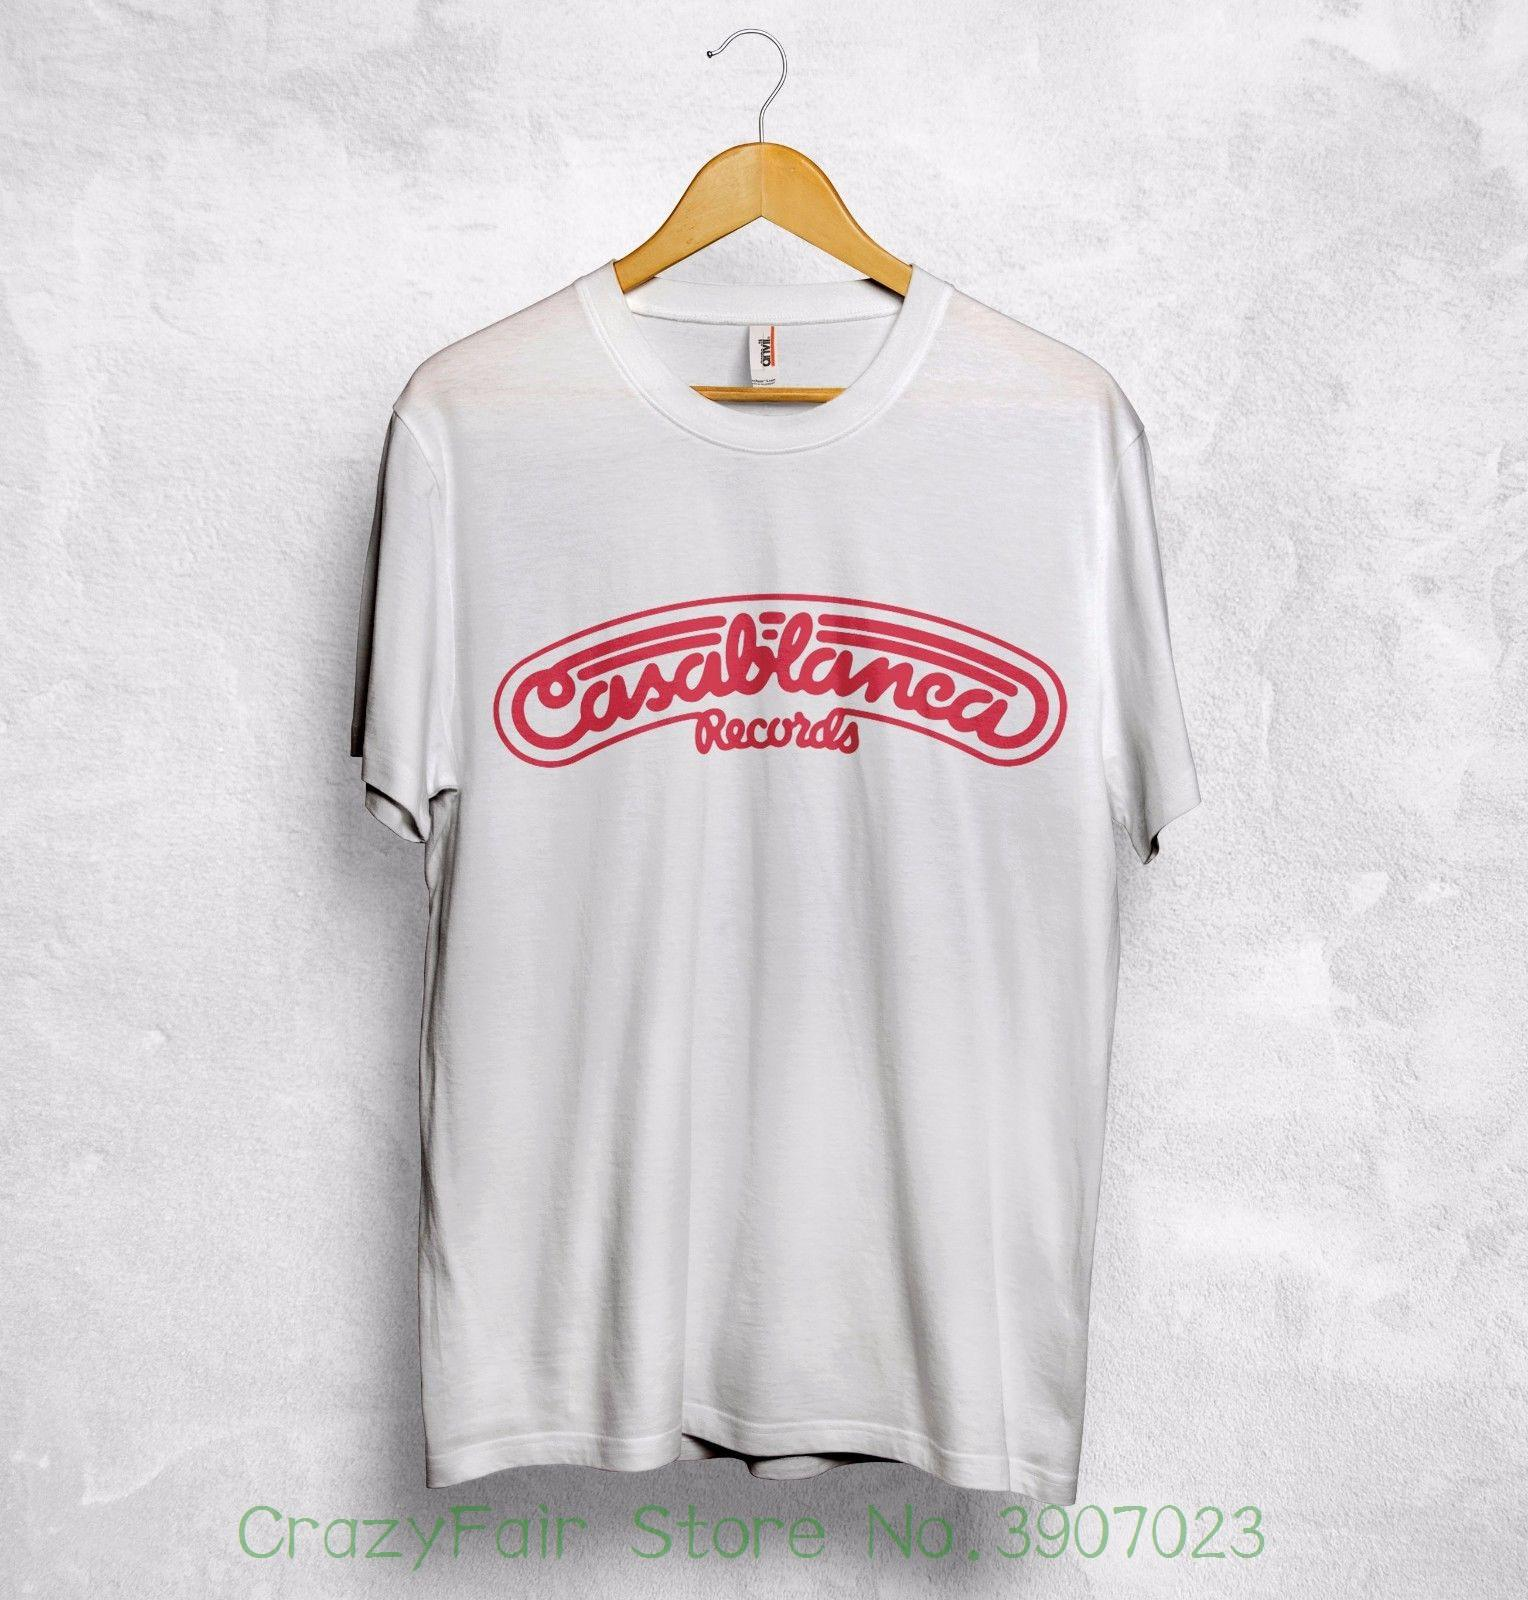 7c159245373 Casablanca Records T Shirt Top Kiss Donna Summer Lipps Parliament Music  Rock Print T Shirt O Neck Short Design Own T Shirt T Shirt Making From ...